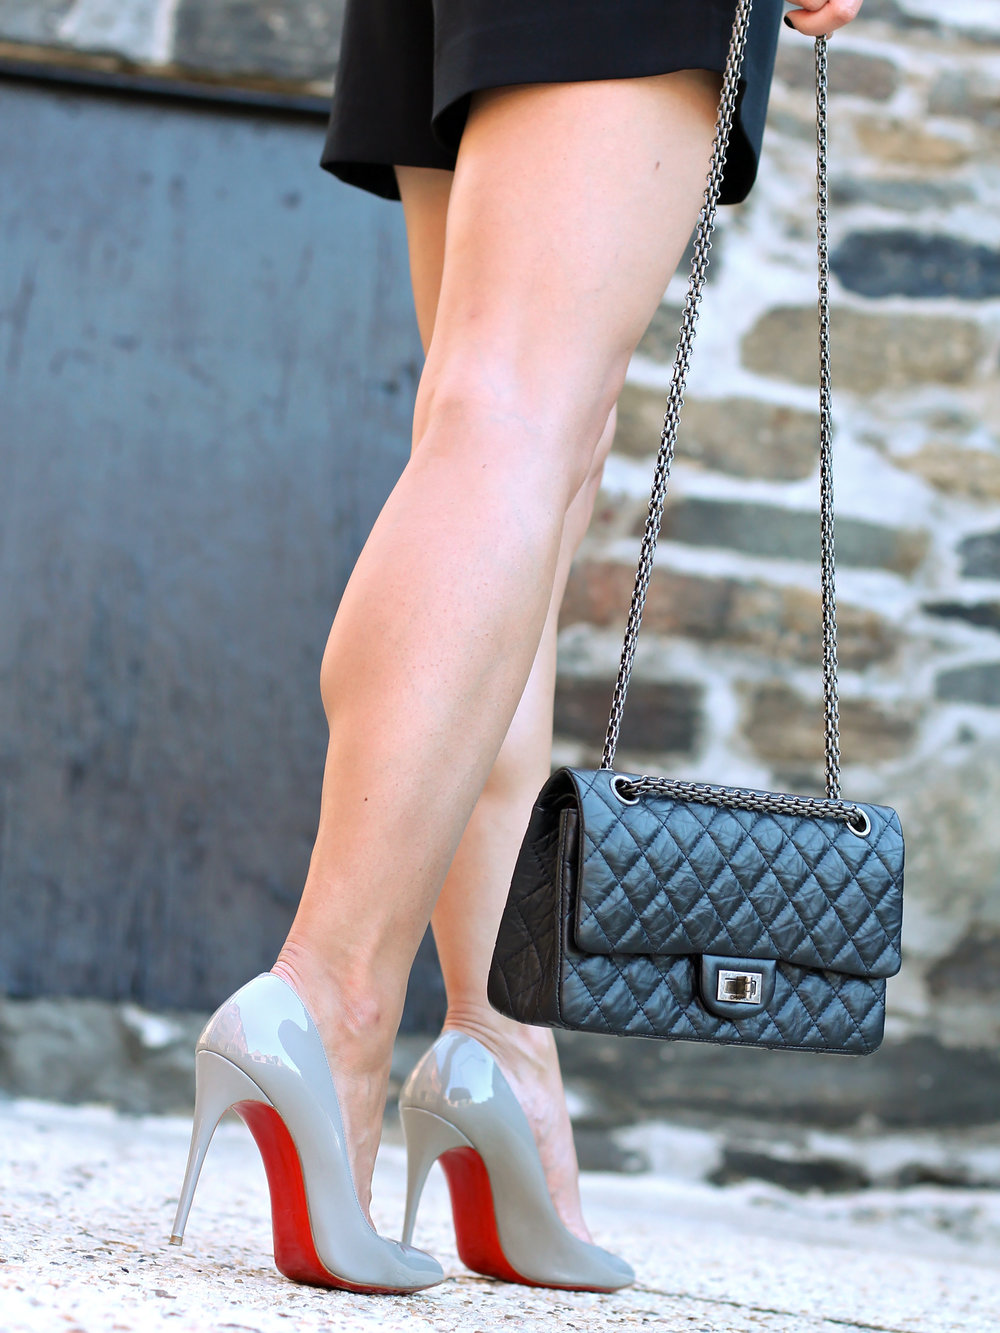 Christian Louboutin Pigalle Follies